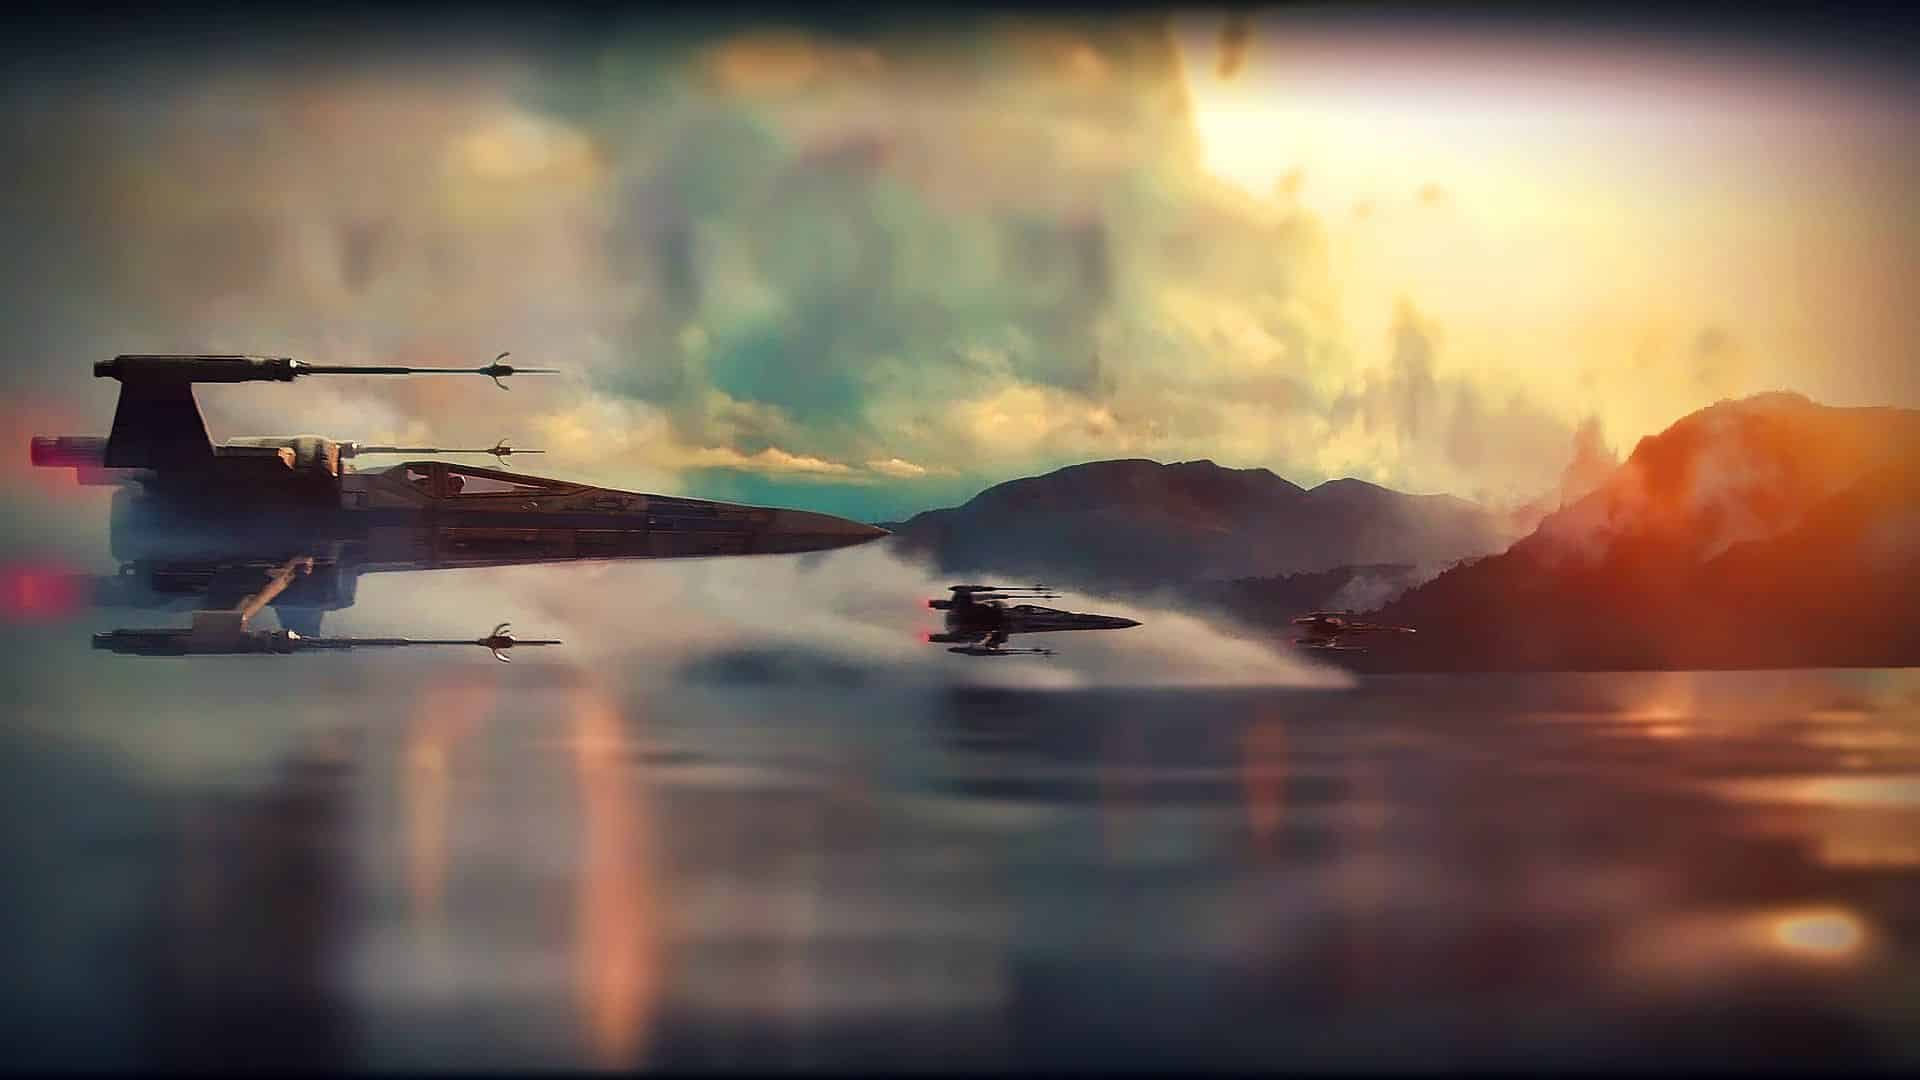 X-Wing Starfighter: The Forces Awakens